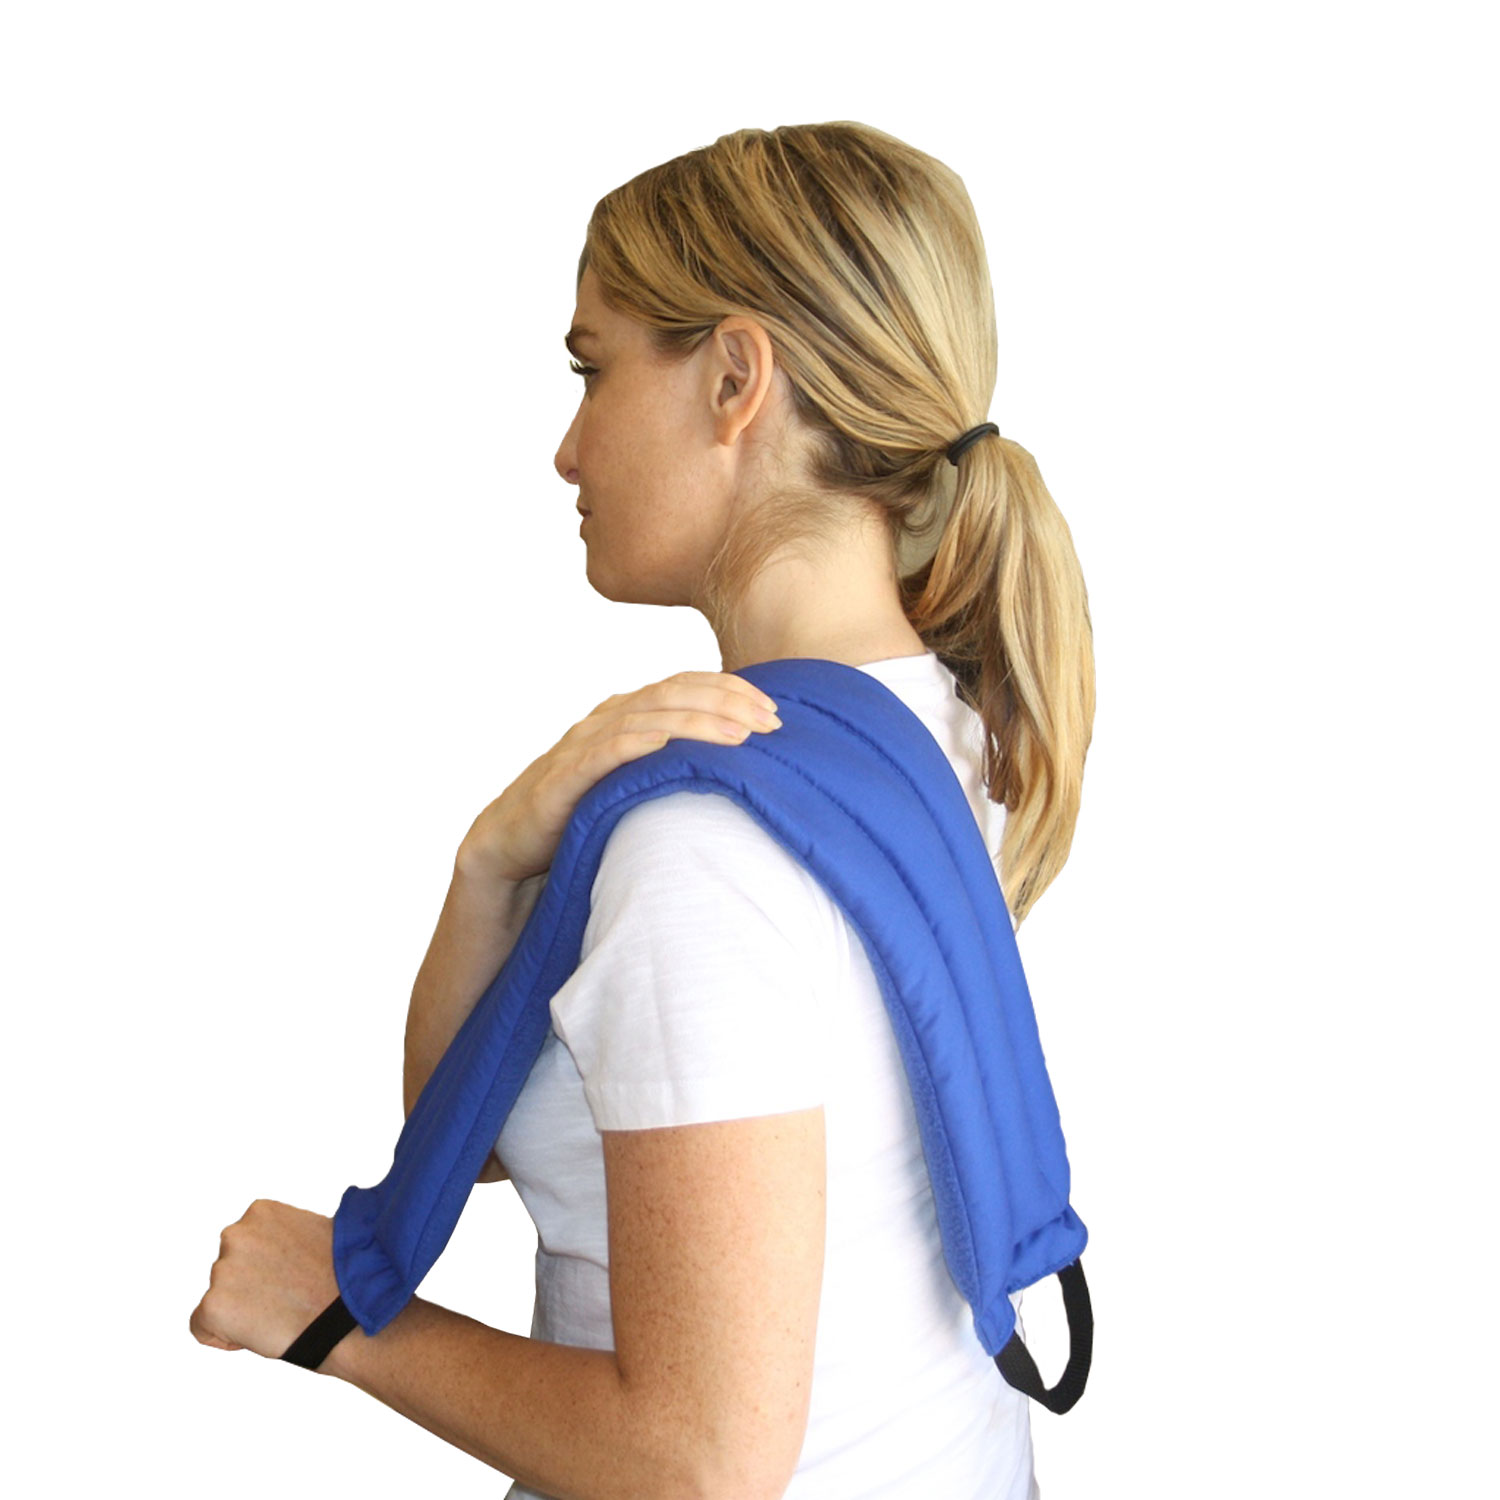 My Heating Pad- Multi Purpose Wrap - Natural Heat Therapy - Neck Pain Relief (Blue)